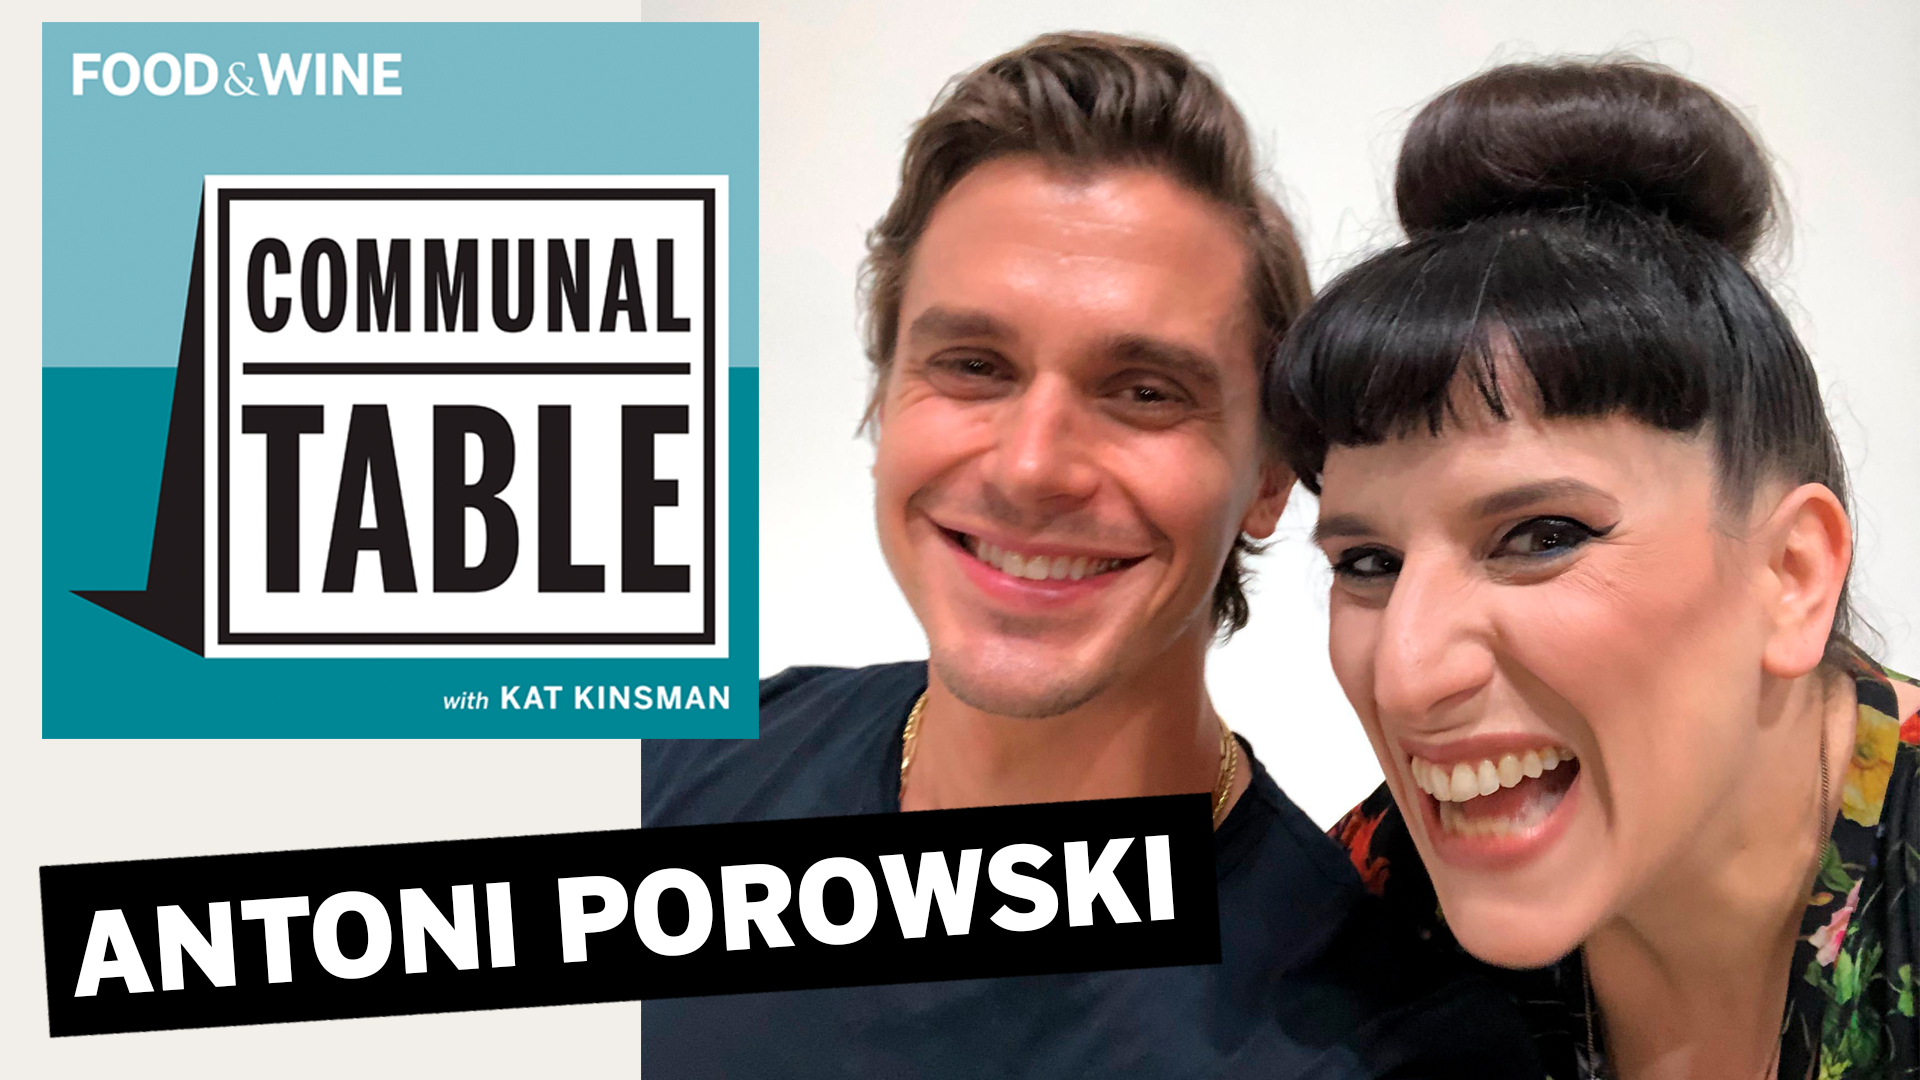 Communal Table Podcast: Antoni Porowski